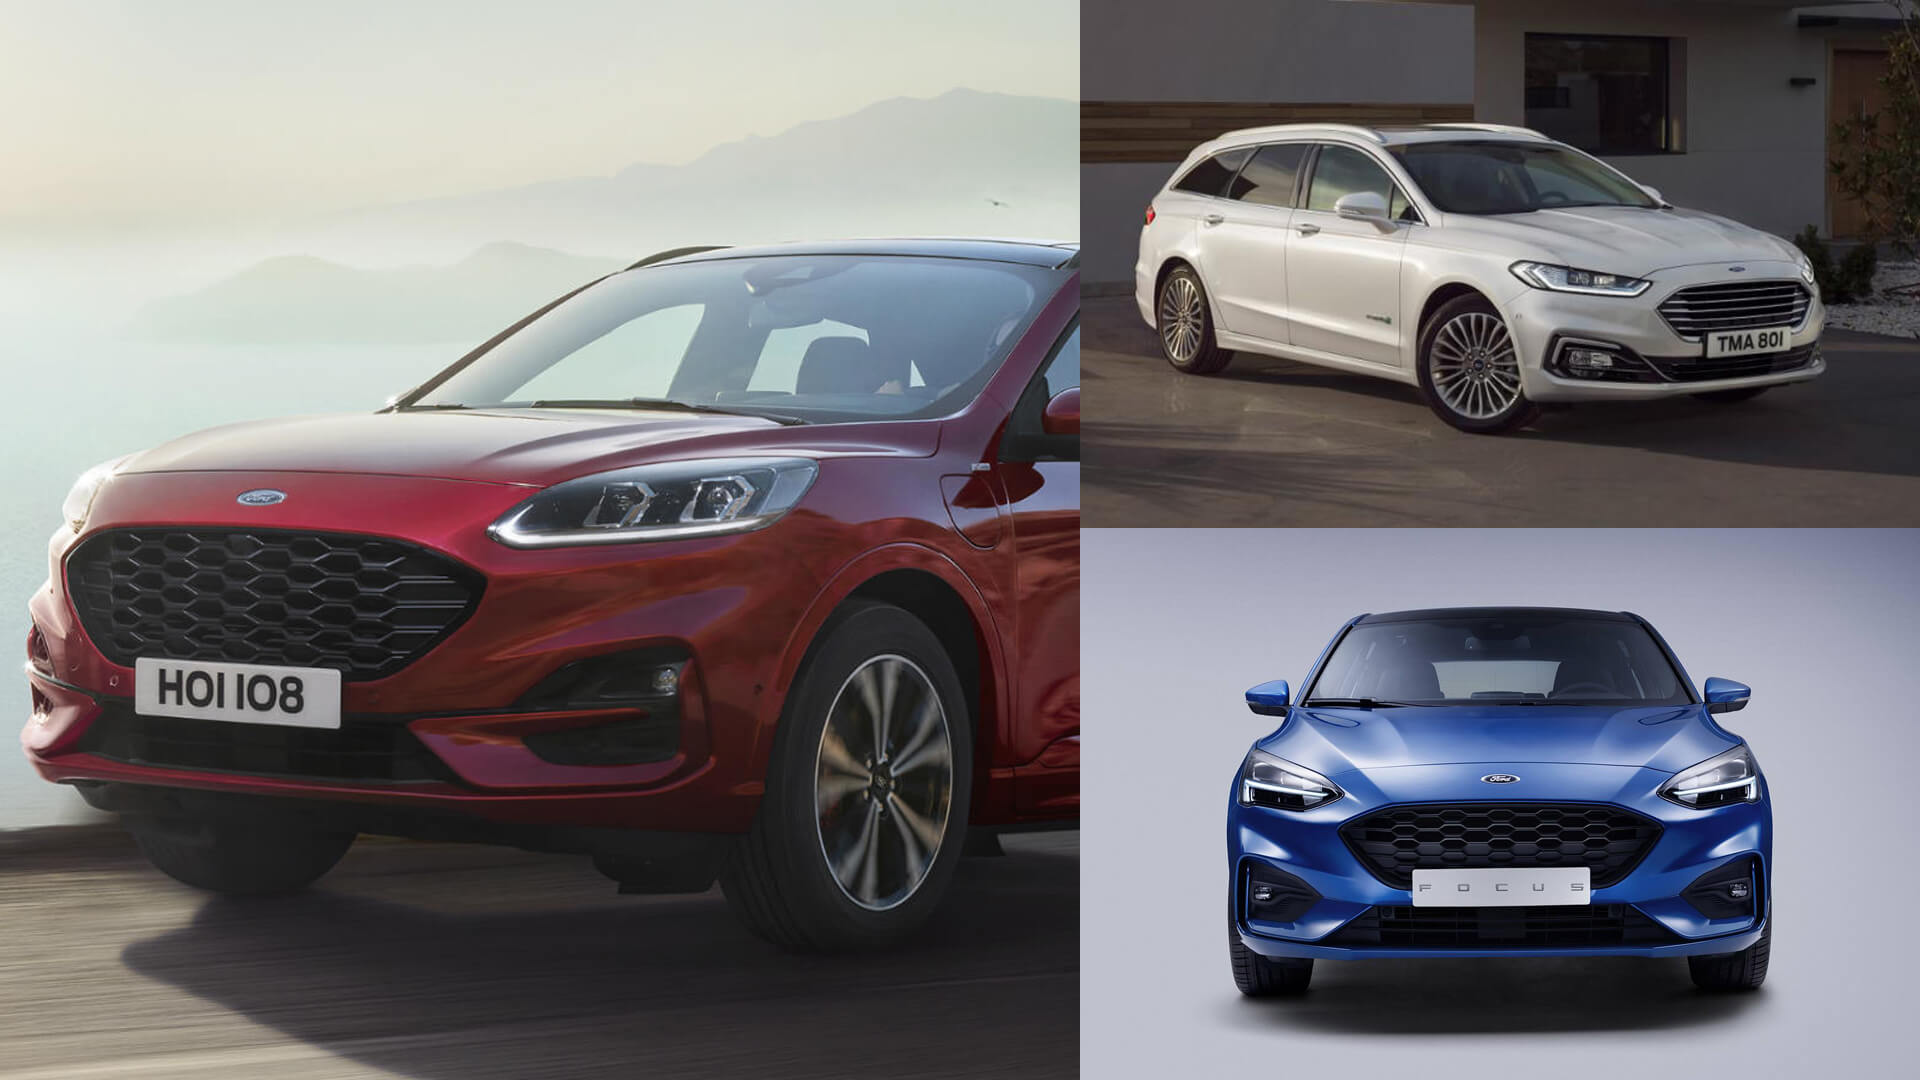 Electric Performance & Fuel Efficient – Ford Focus and Fiesta EcoBoost Hybrid next year